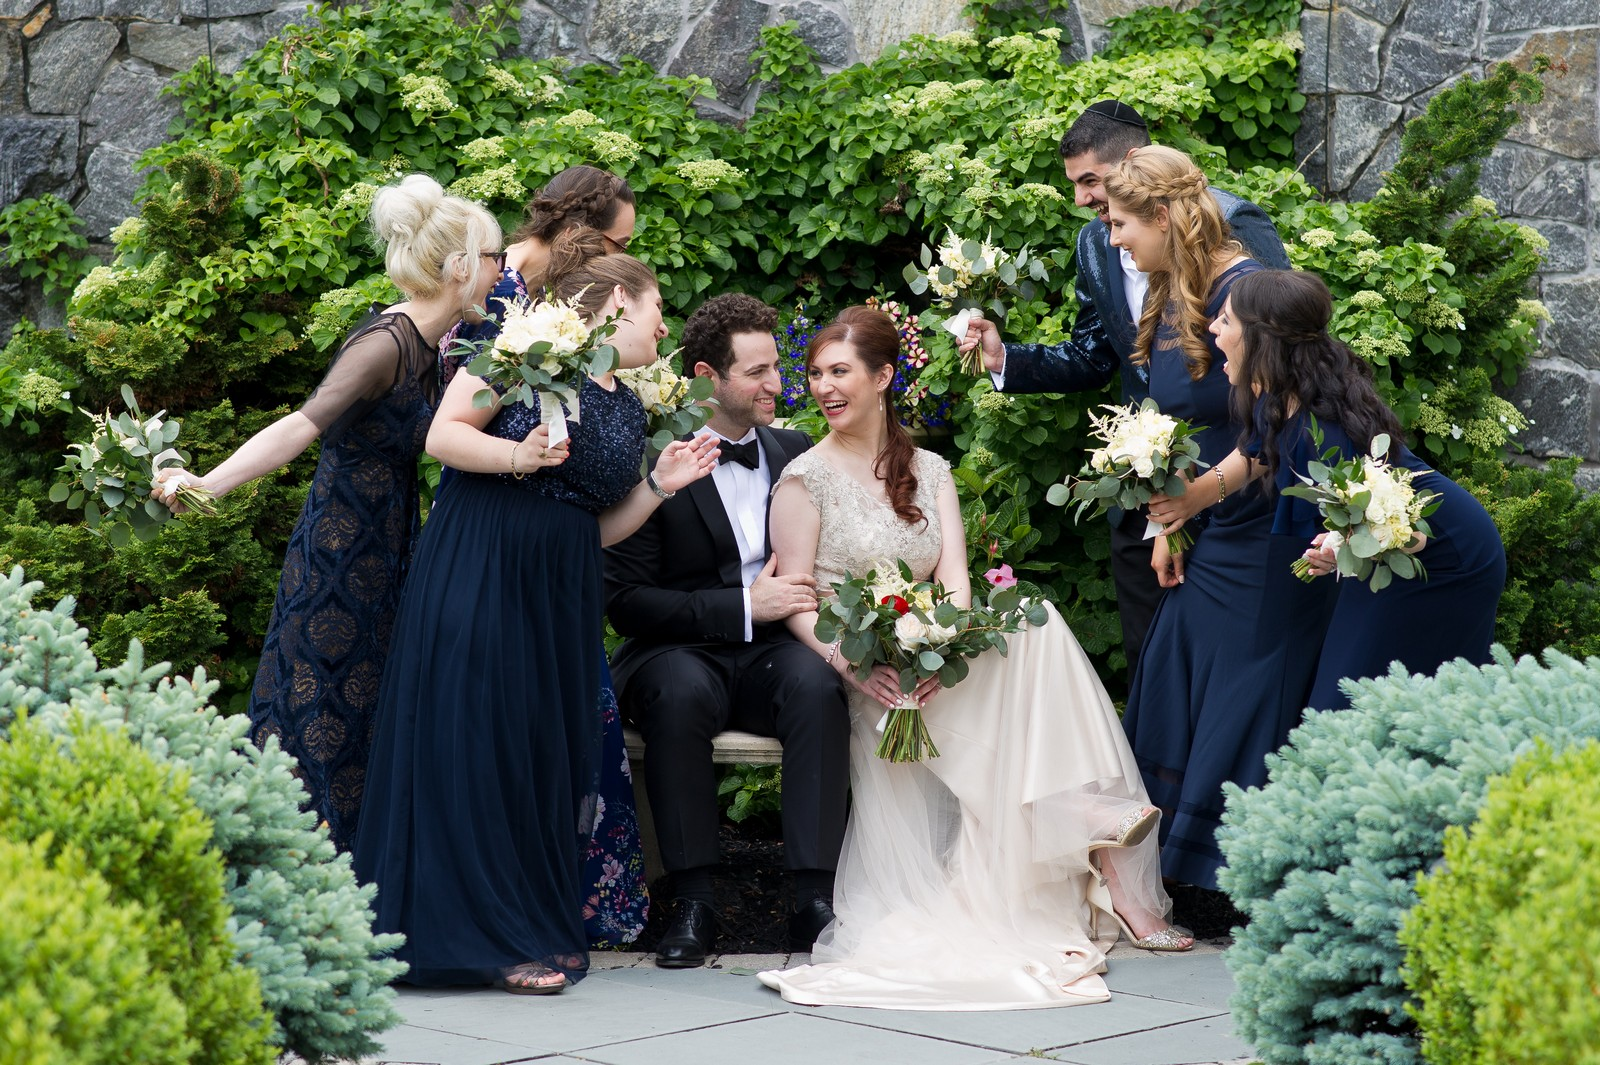 Yoey and Aaron's Memorial Day Modern Jewish Wedding at Anthony's Pier 9, New Windsor, NY Photos by Chaim Schvarcz bride groom bridesmaids portraits